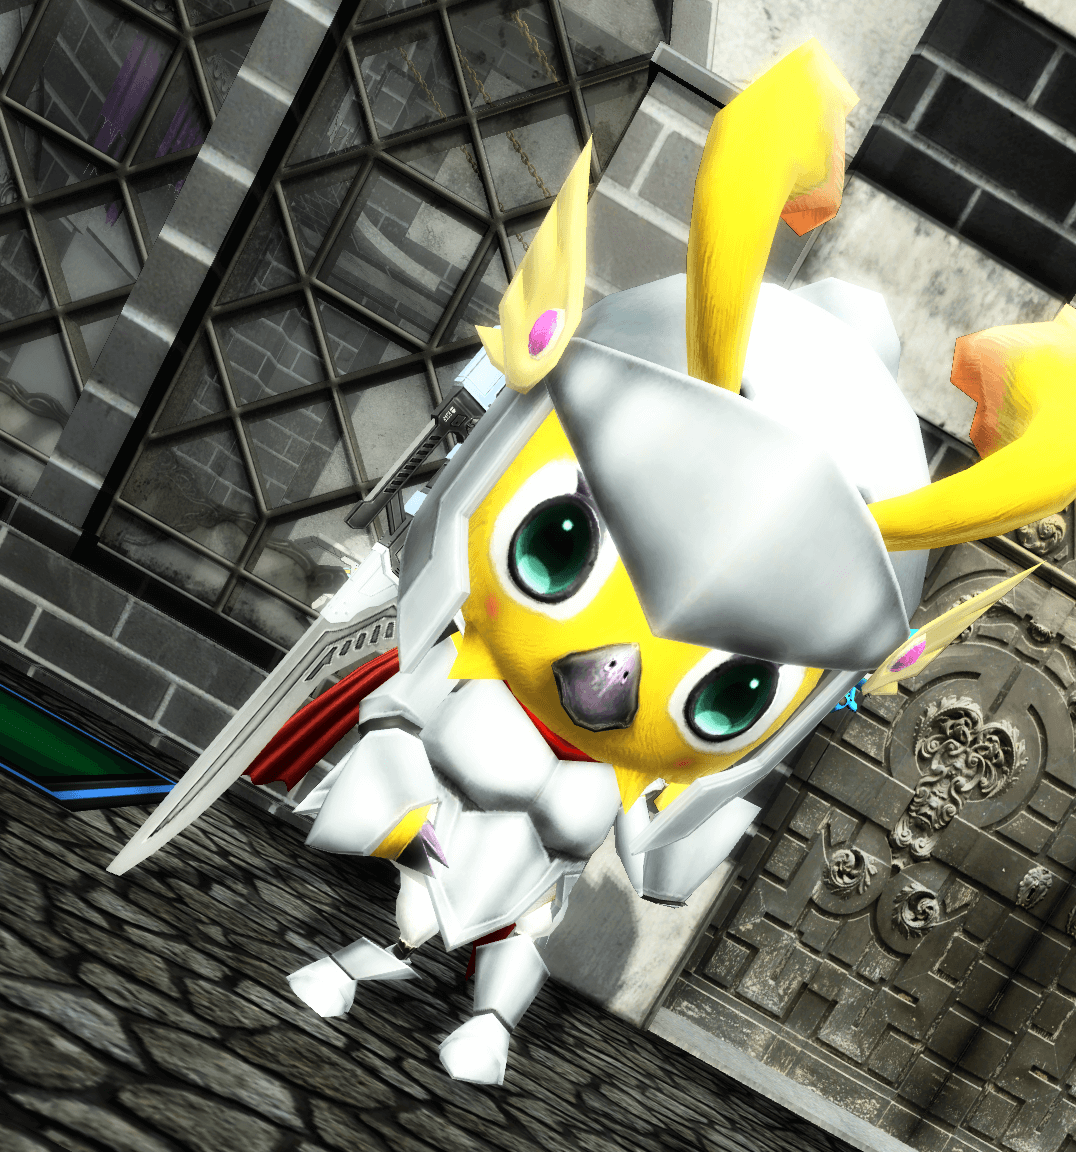 pso20160407_022850_001.png